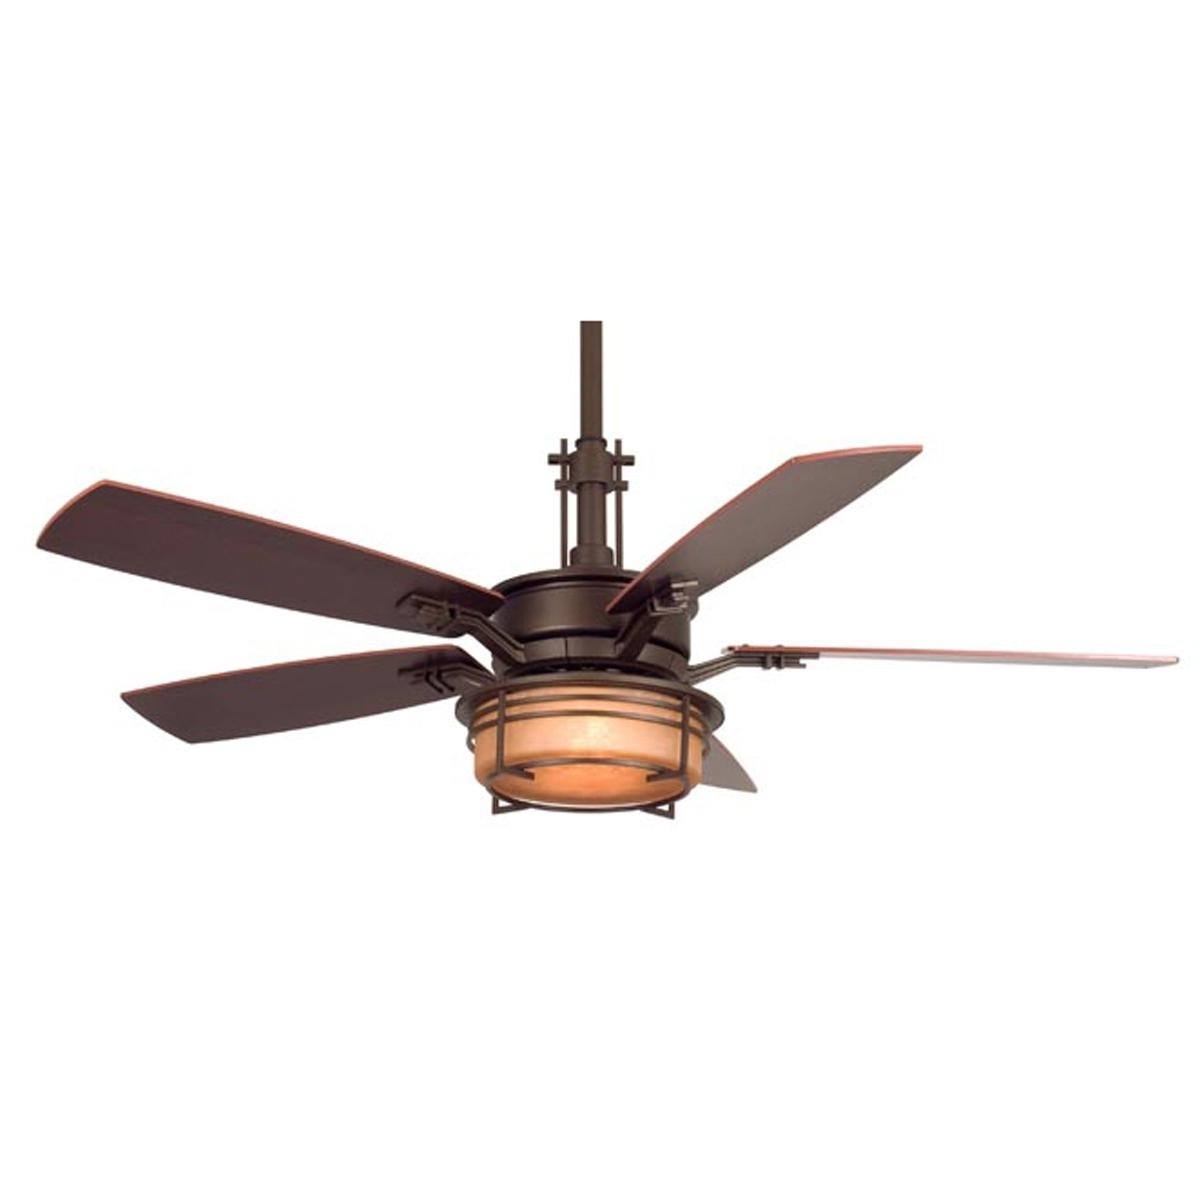 Mission Style Outdoor Ceiling Fans With Lights In 2018 Mission Style Ceiling Lights Fan With Light Big Led Outdoor Flush (View 2 of 20)